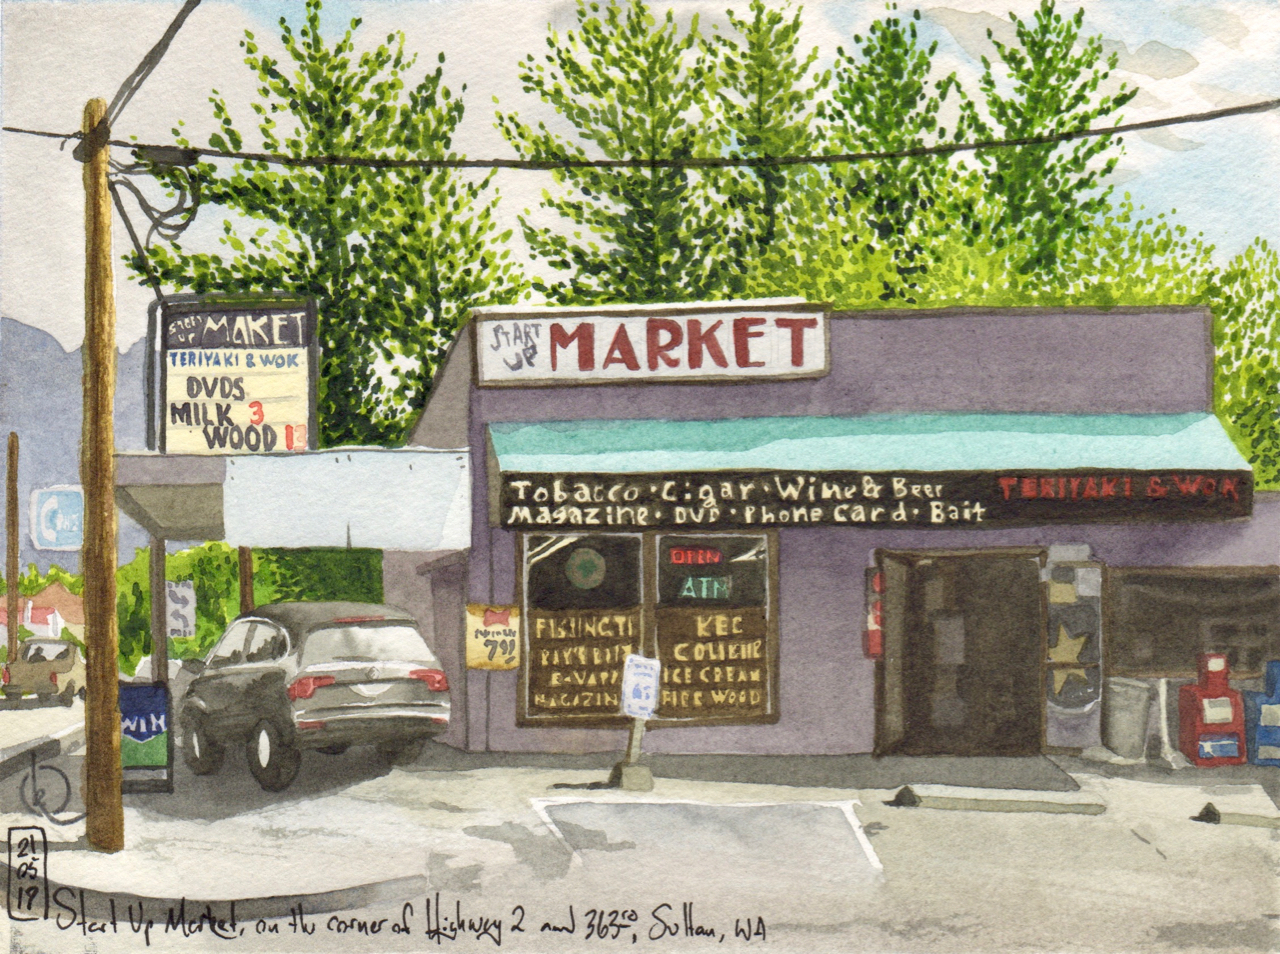 Start Up Market, on the corner of Highway 2 and 363rd Ave, Sultan, WA